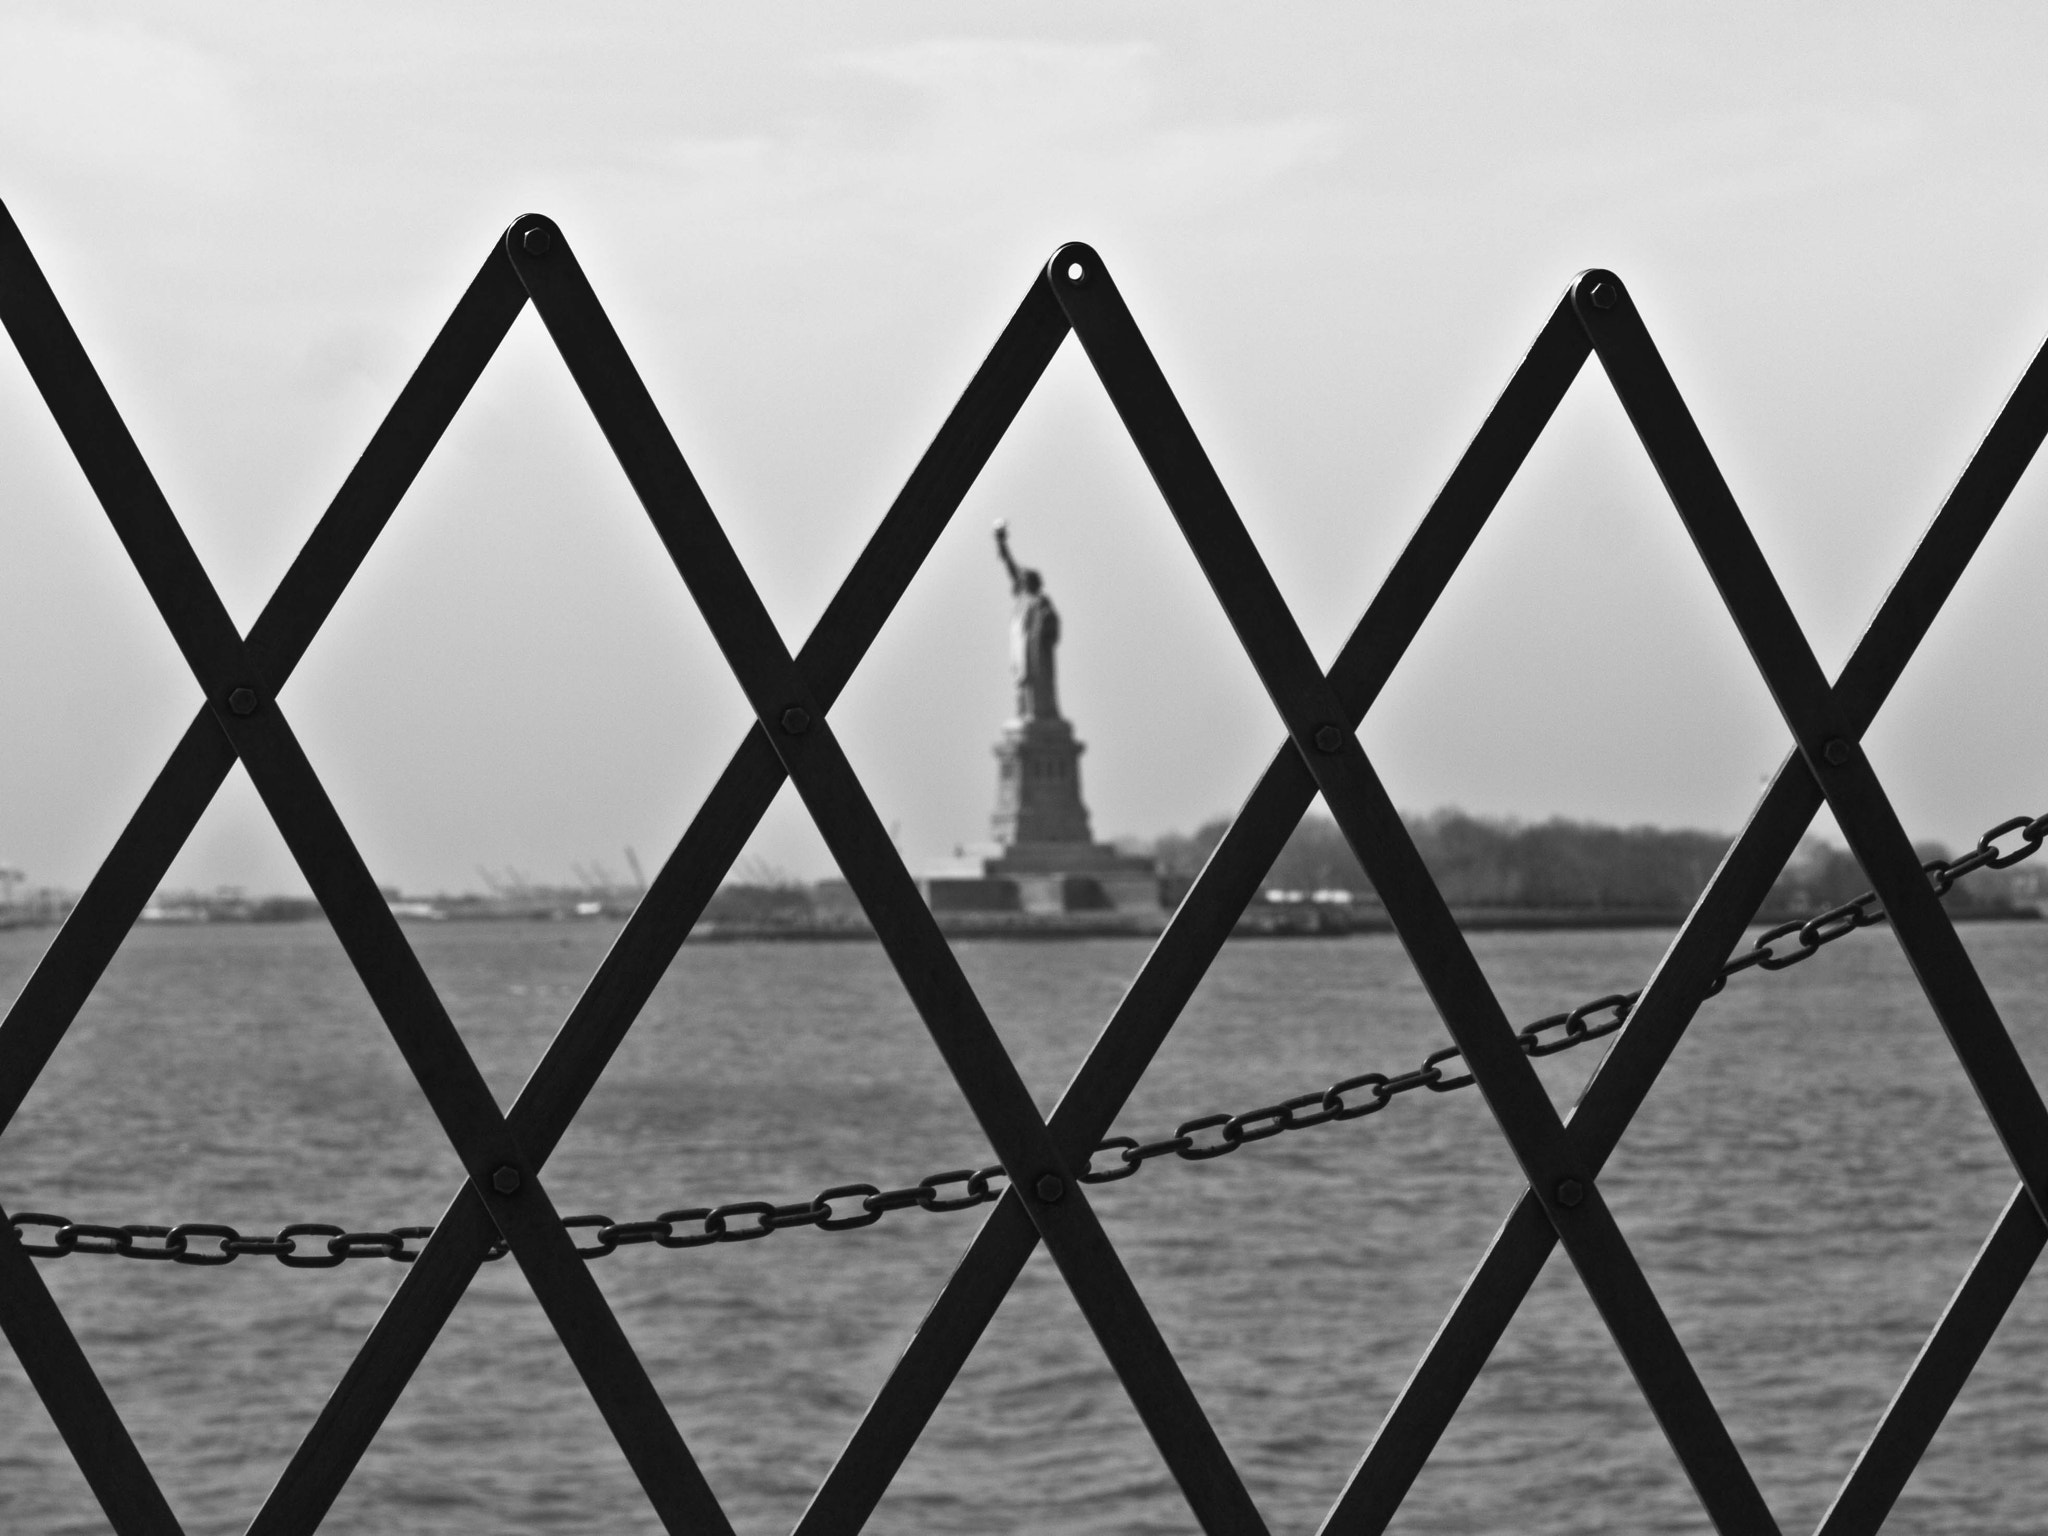 Photograph freedom: caught in a trap // new york city, usa by Pamela Ross on 500px